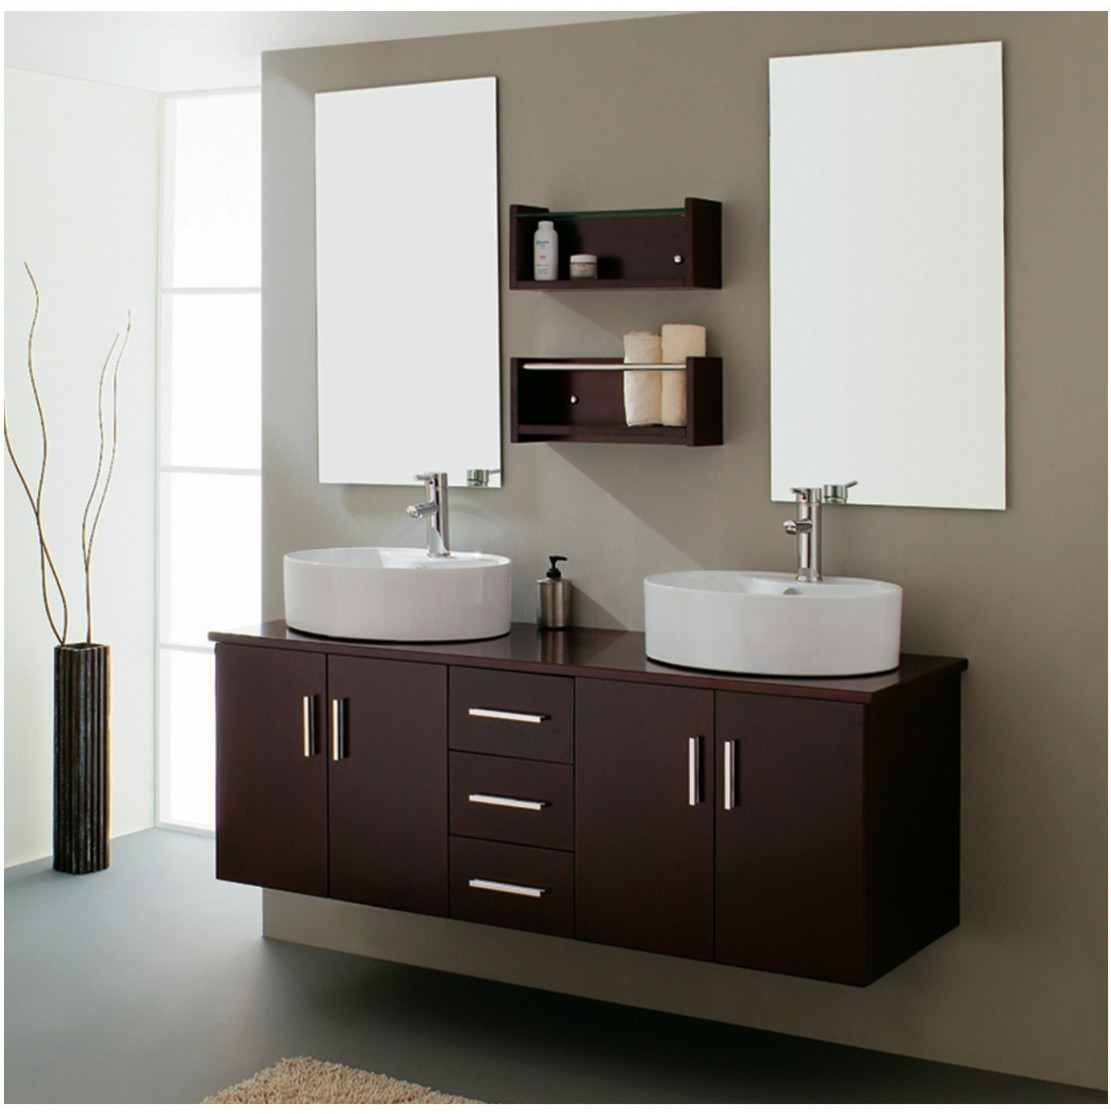 Bathroom Double Vanity Ideas Modern Bathroom Double Sink Home Decorating Ideas